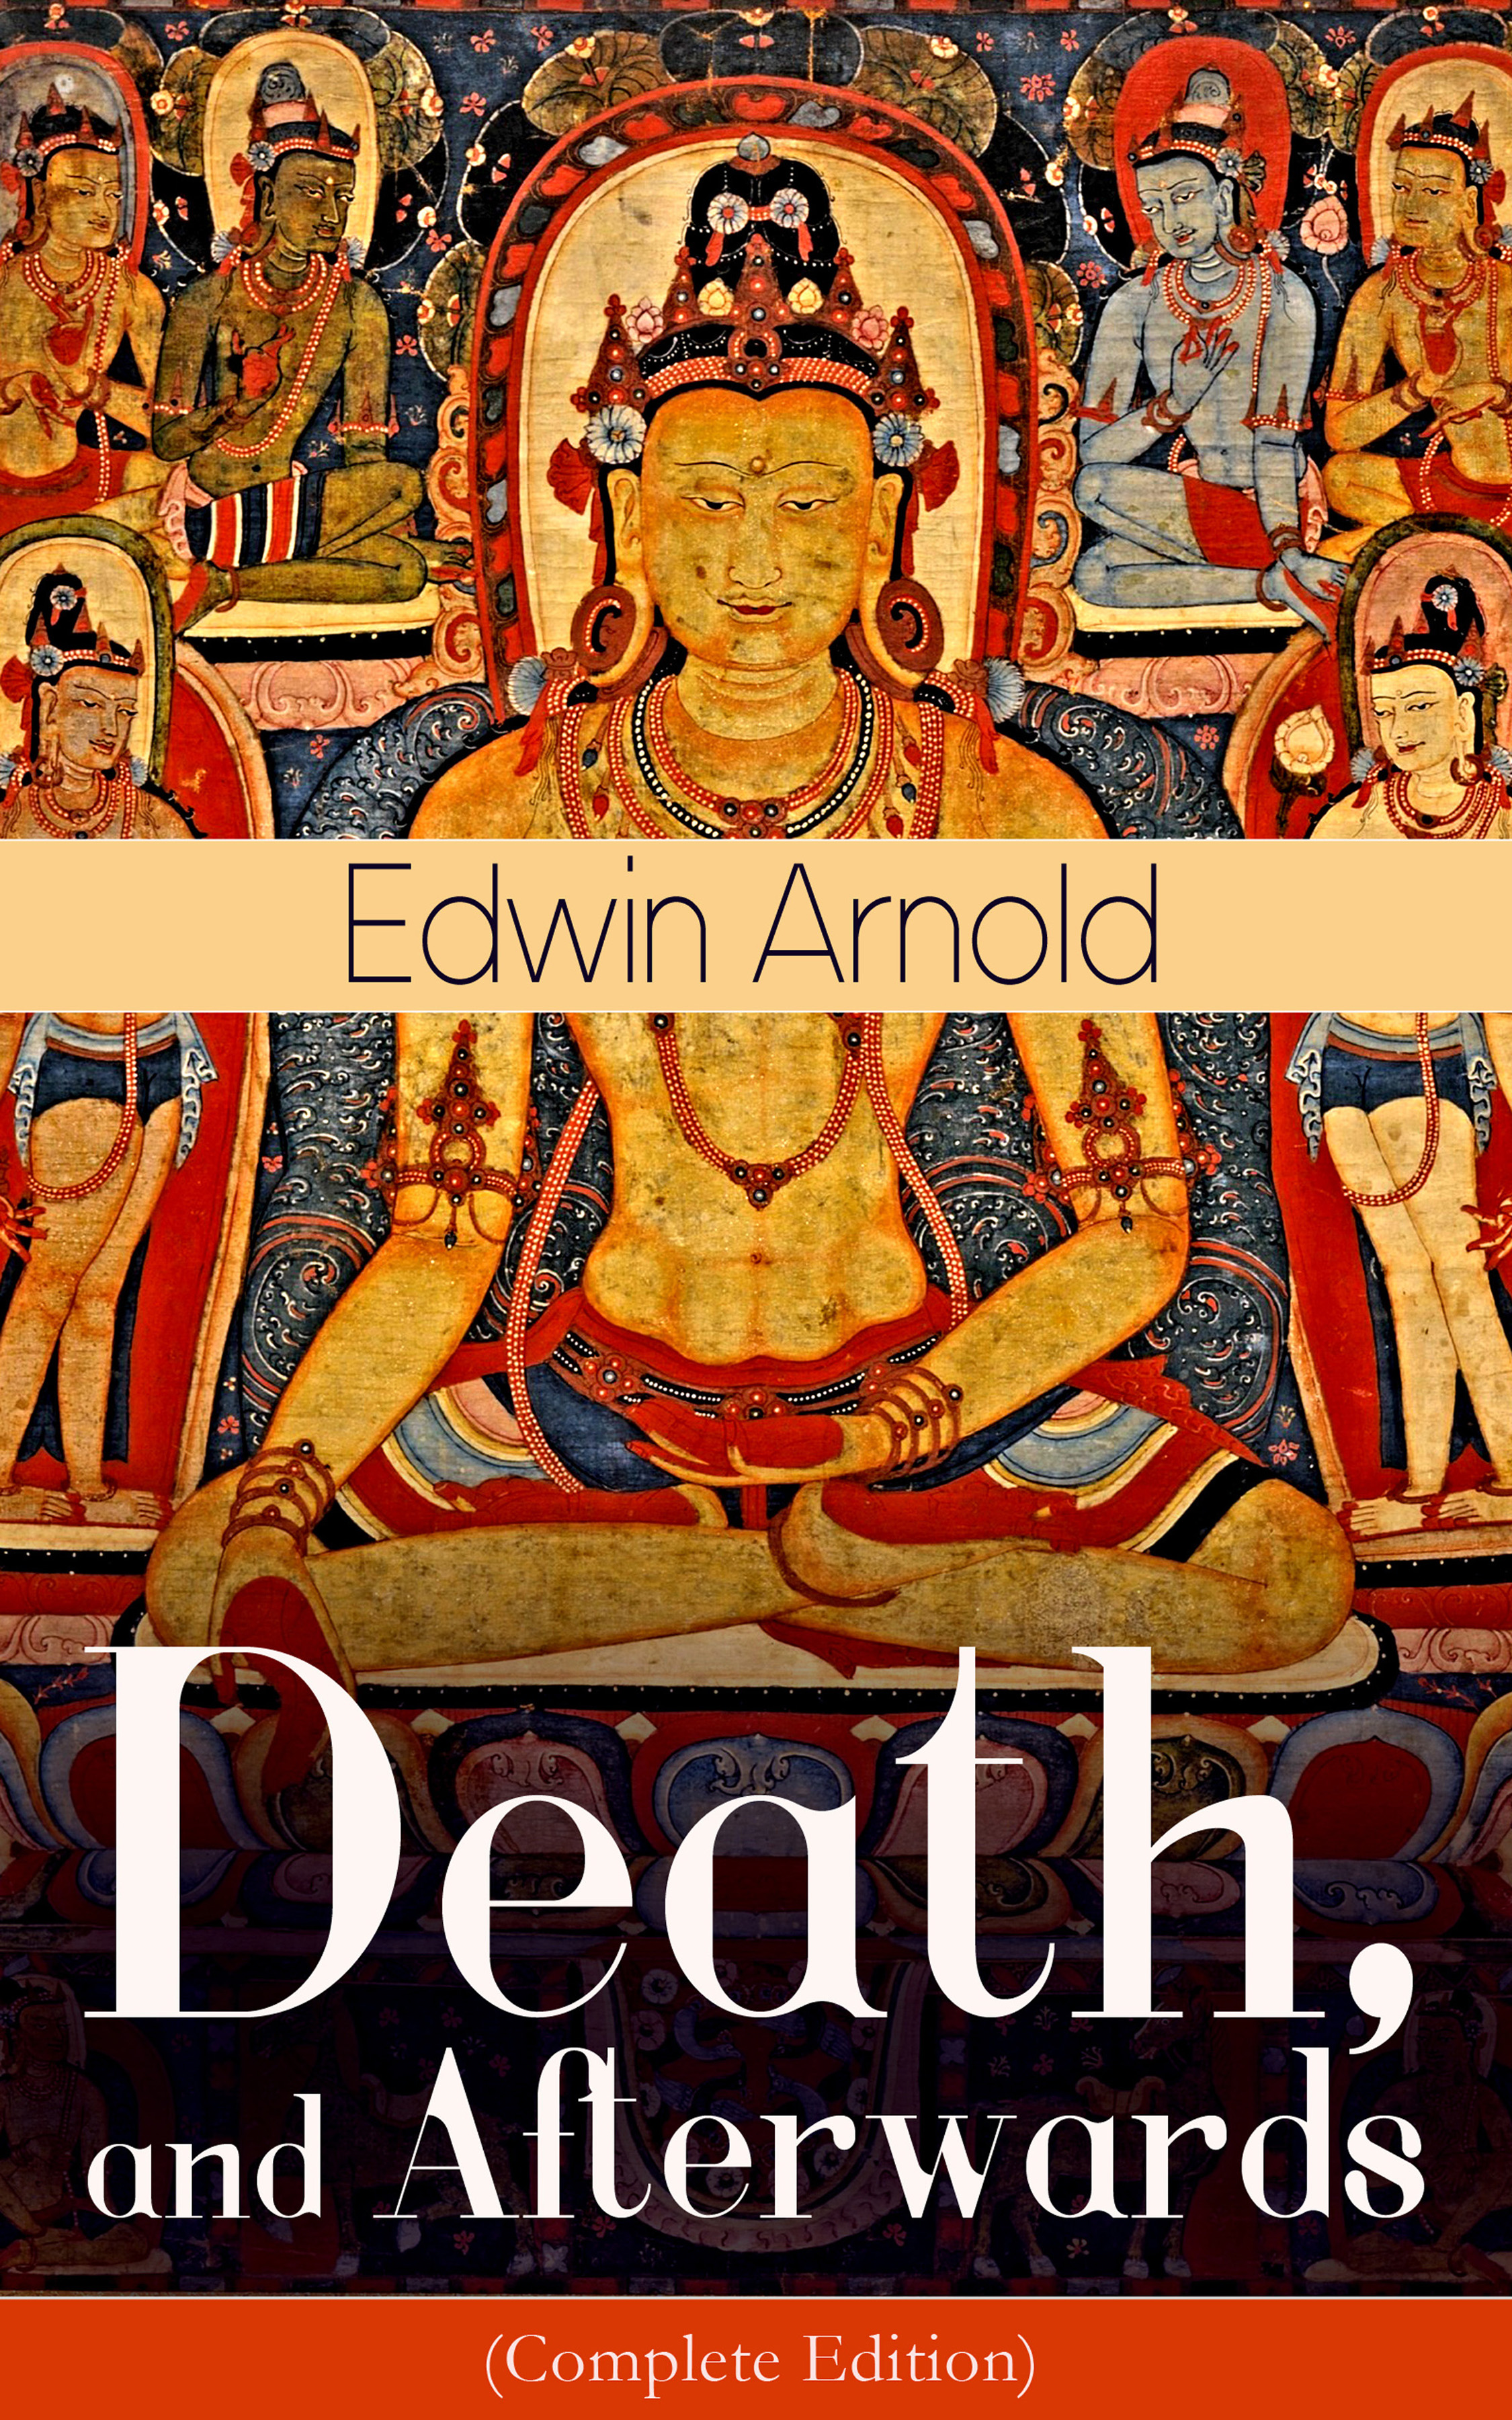 Edwin Arnold Death, and Afterwards (Complete Edition): From the English poet, best known for the Indian epic, dealing with the life and teaching of the Buddha, who also produced a well-known poetic rendering of the sacred Hindu scripture Bhagavad Gita m l abbé trochon shakespeare jest books a hundred merry talys from the only known copy mery tales and quicke answeres from the rare edition of 1567